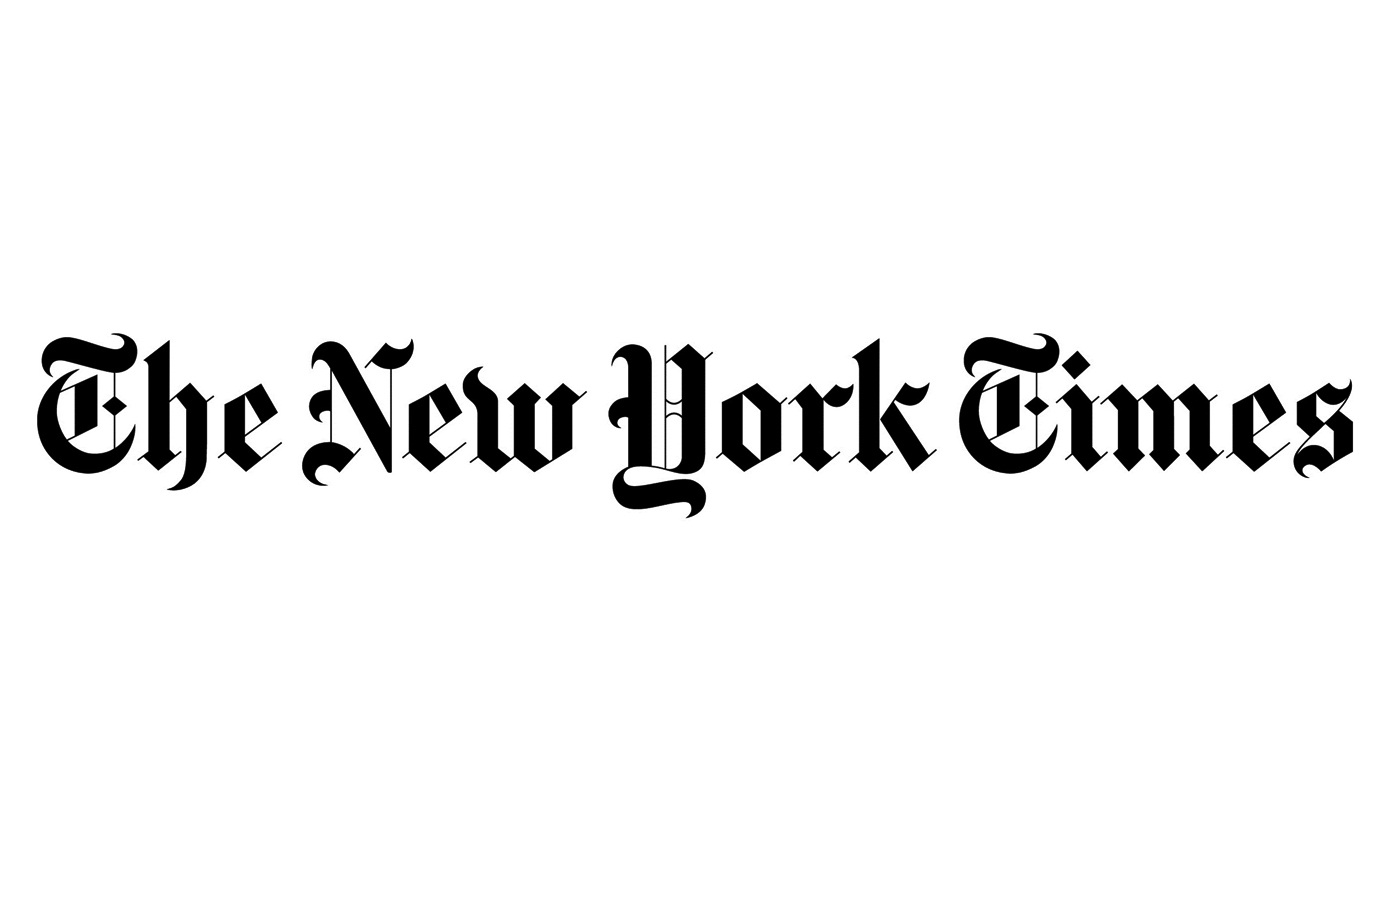 new-york-times-logo-8.jpg